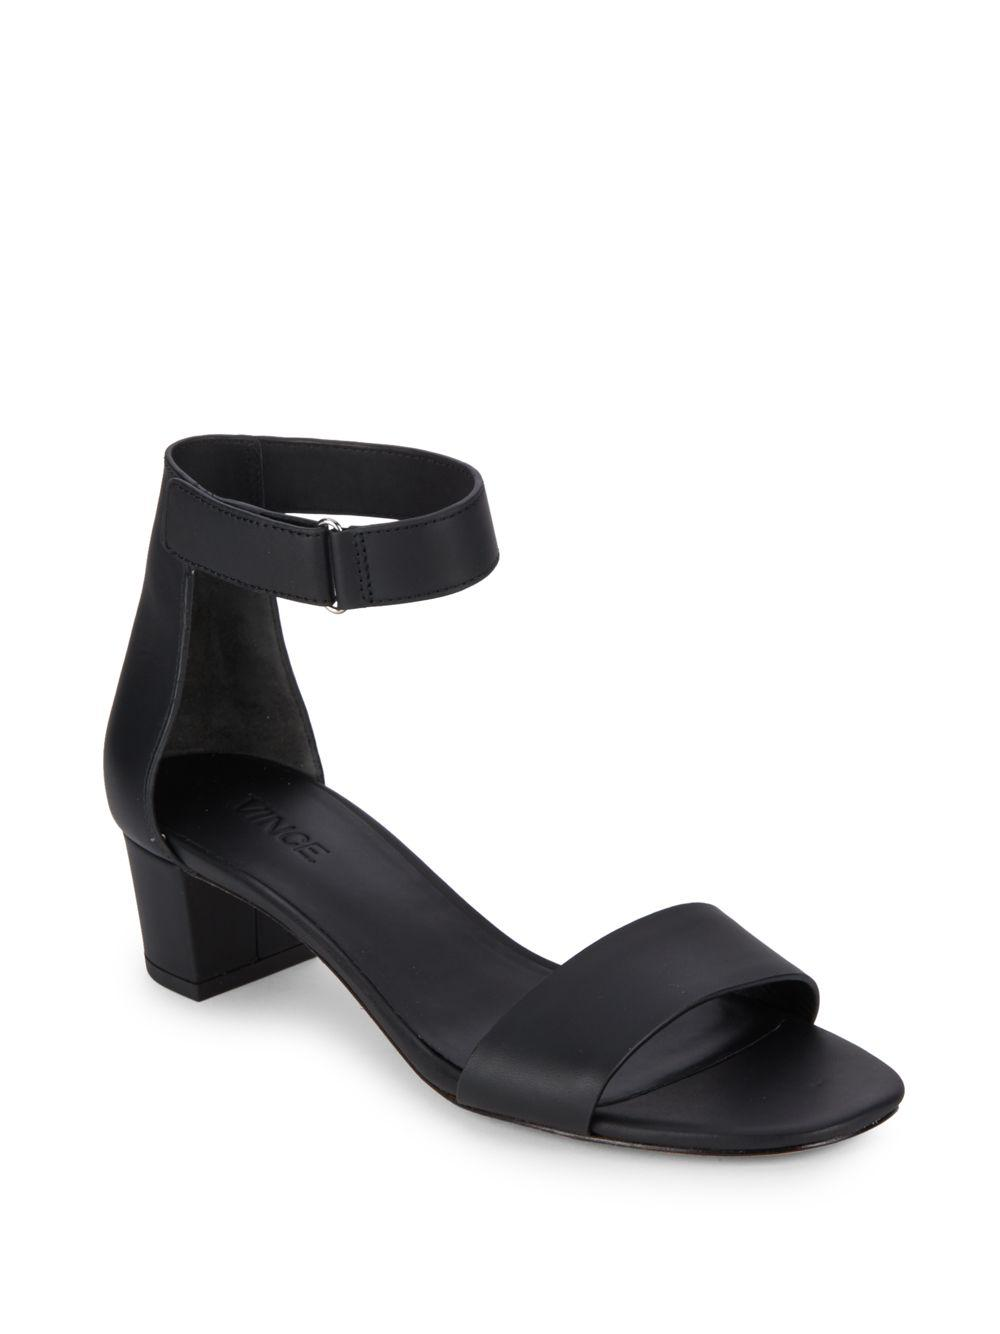 65185acdd5d Lyst - Vince Rita Leather Ankle Strap Sandals in Black - Save 51%